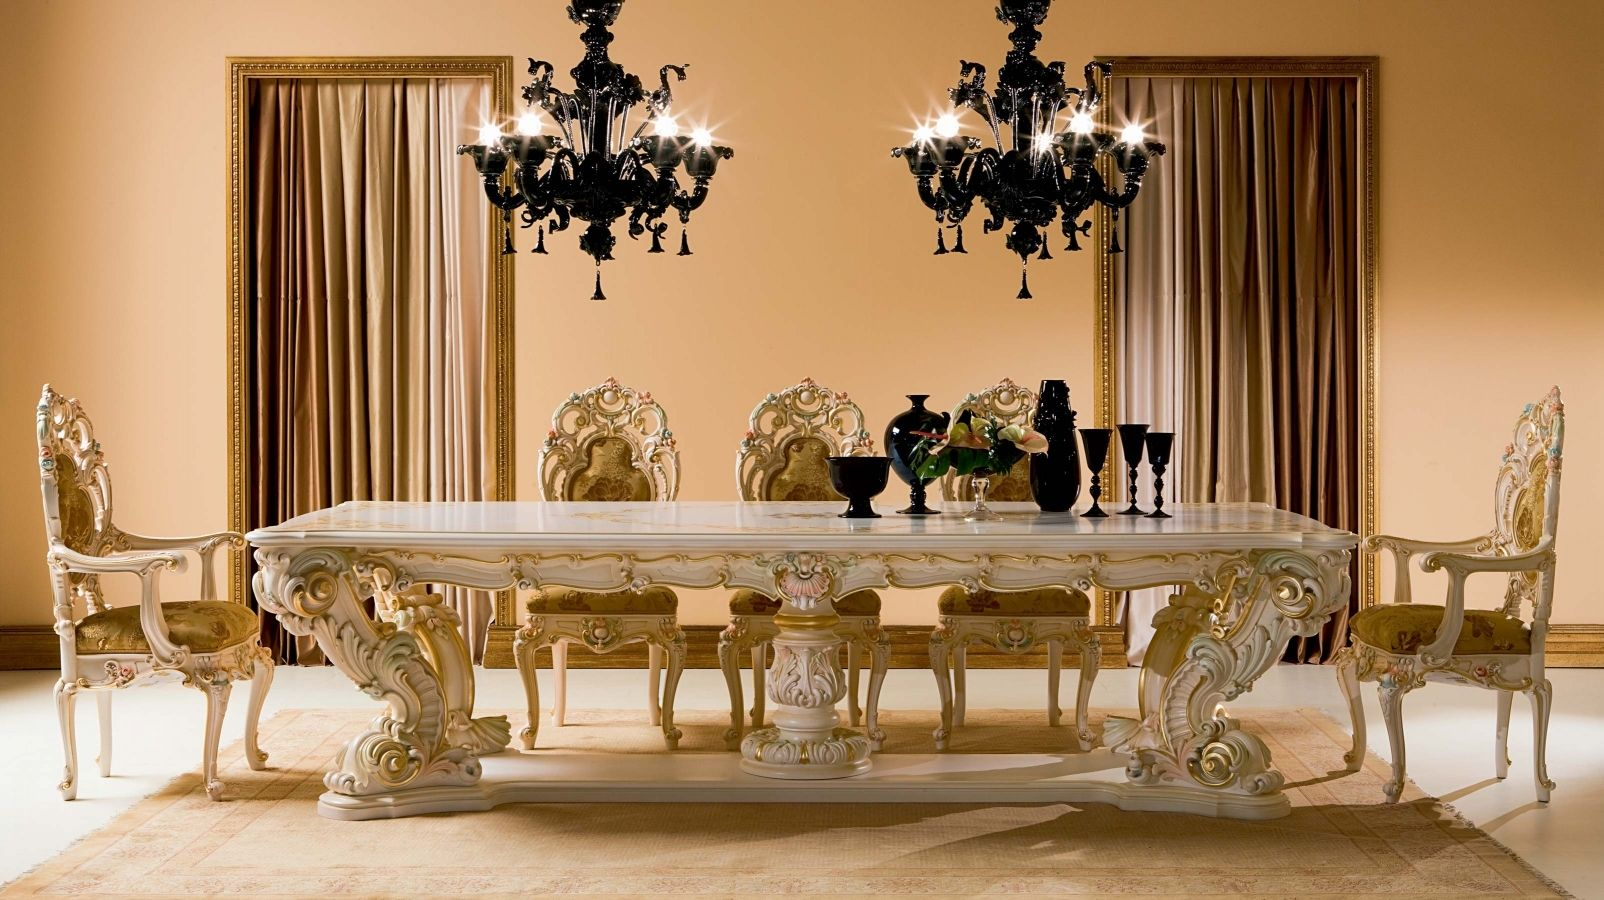 Dining table lighting inspiration on dining room design for Unique dining room designs